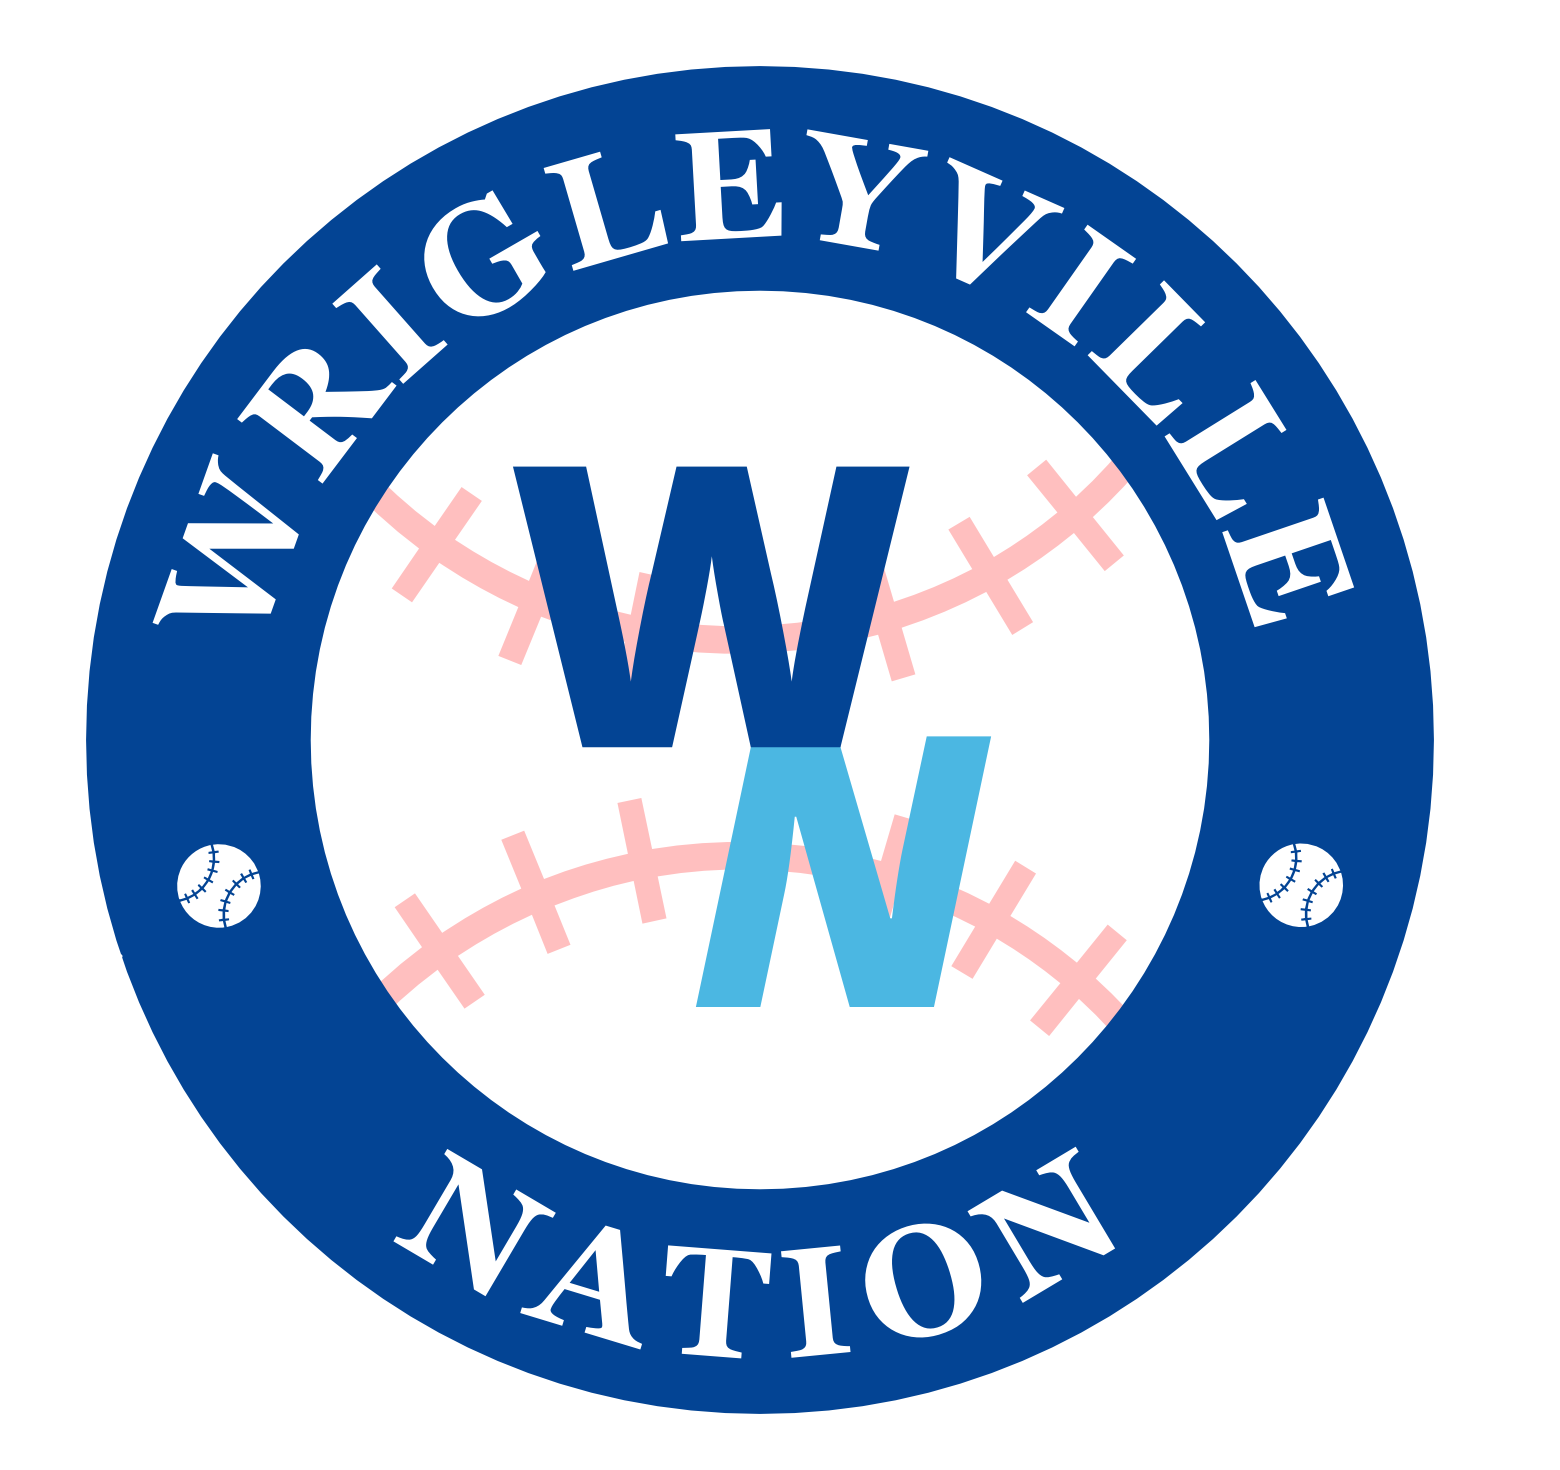 Wrigleyville Nation Ep 231 - Guest: Evan Altman, Cubs Trade Deadline, Final Month of Season show art